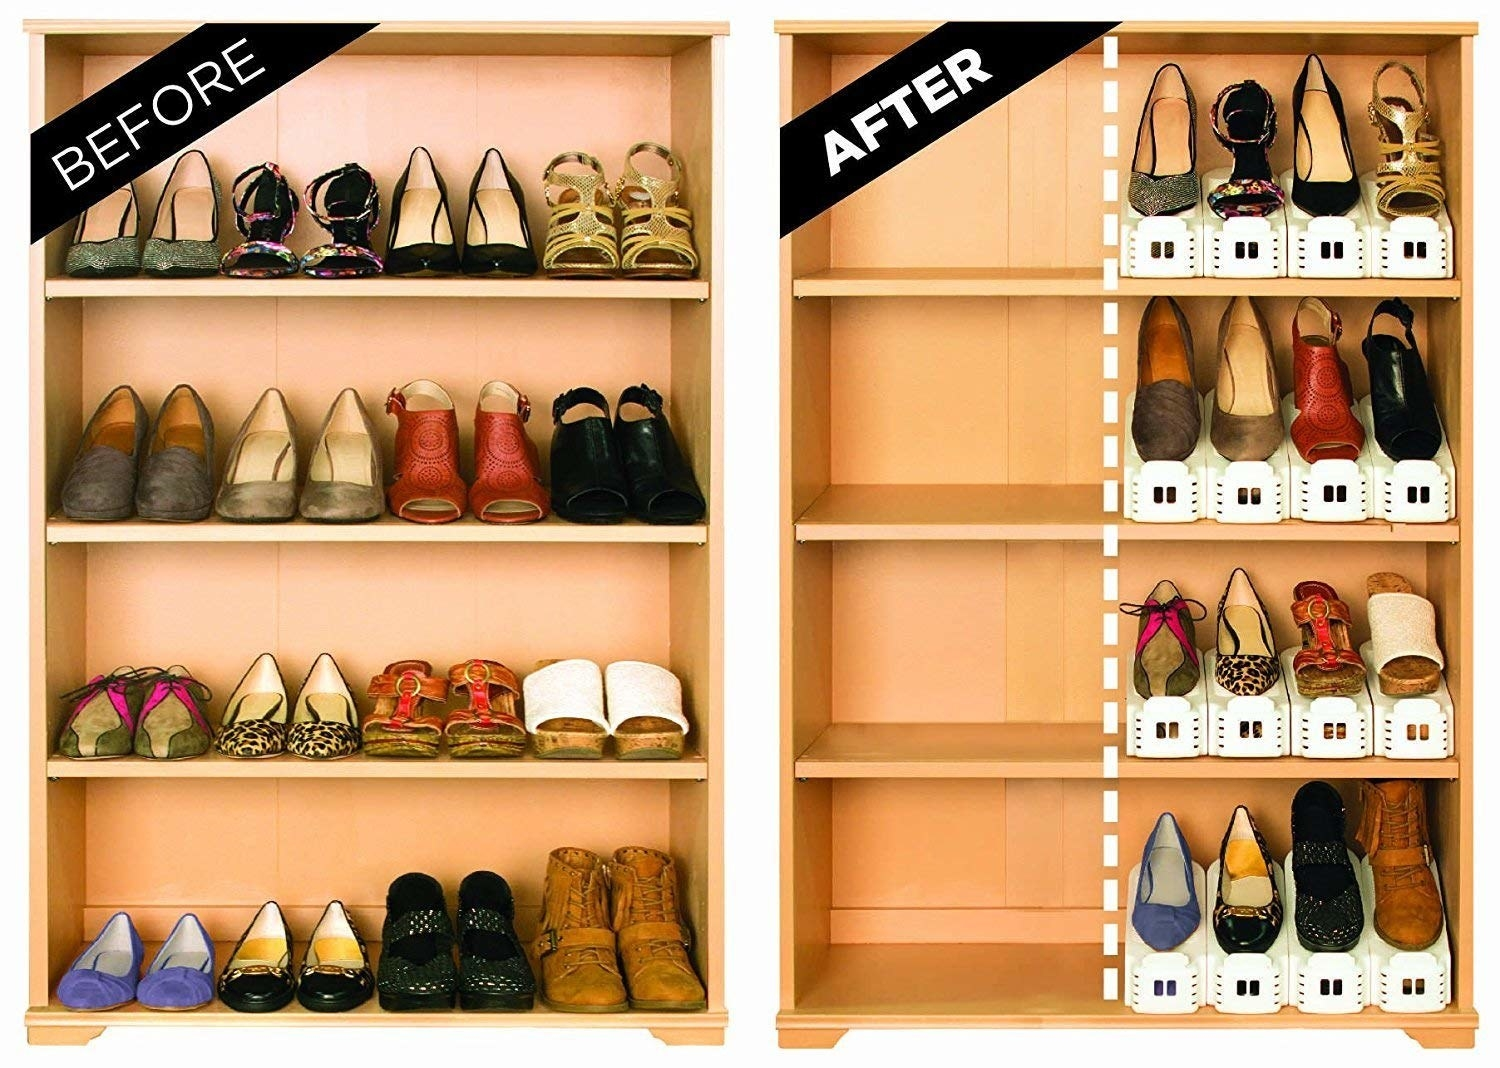 A before/after of shows on shelves, with the after showing the shoes taking up half as much room due to being stacked on top of each other